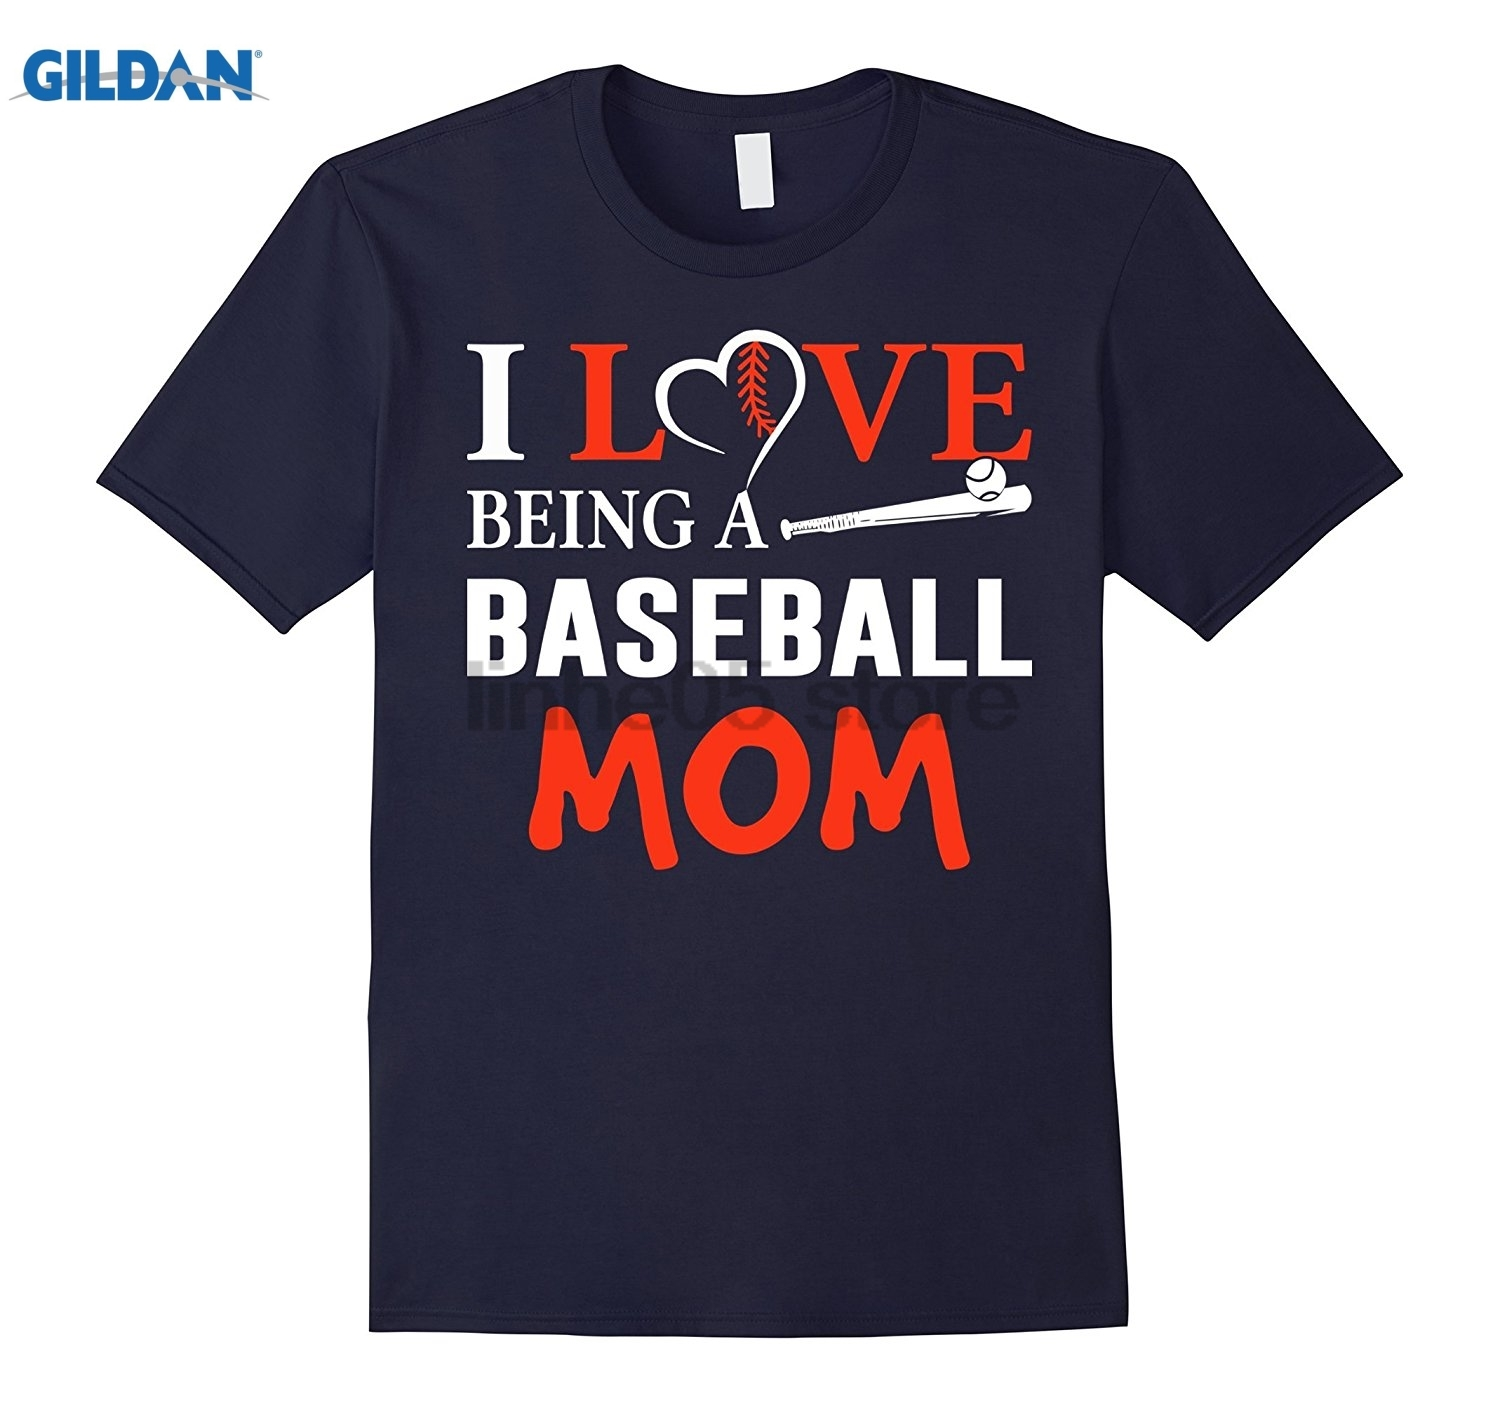 GILDAN I Love Being A Baseball Mom T Shirt, Sporty Mom T Shirt Hot Womens T-shirt ...